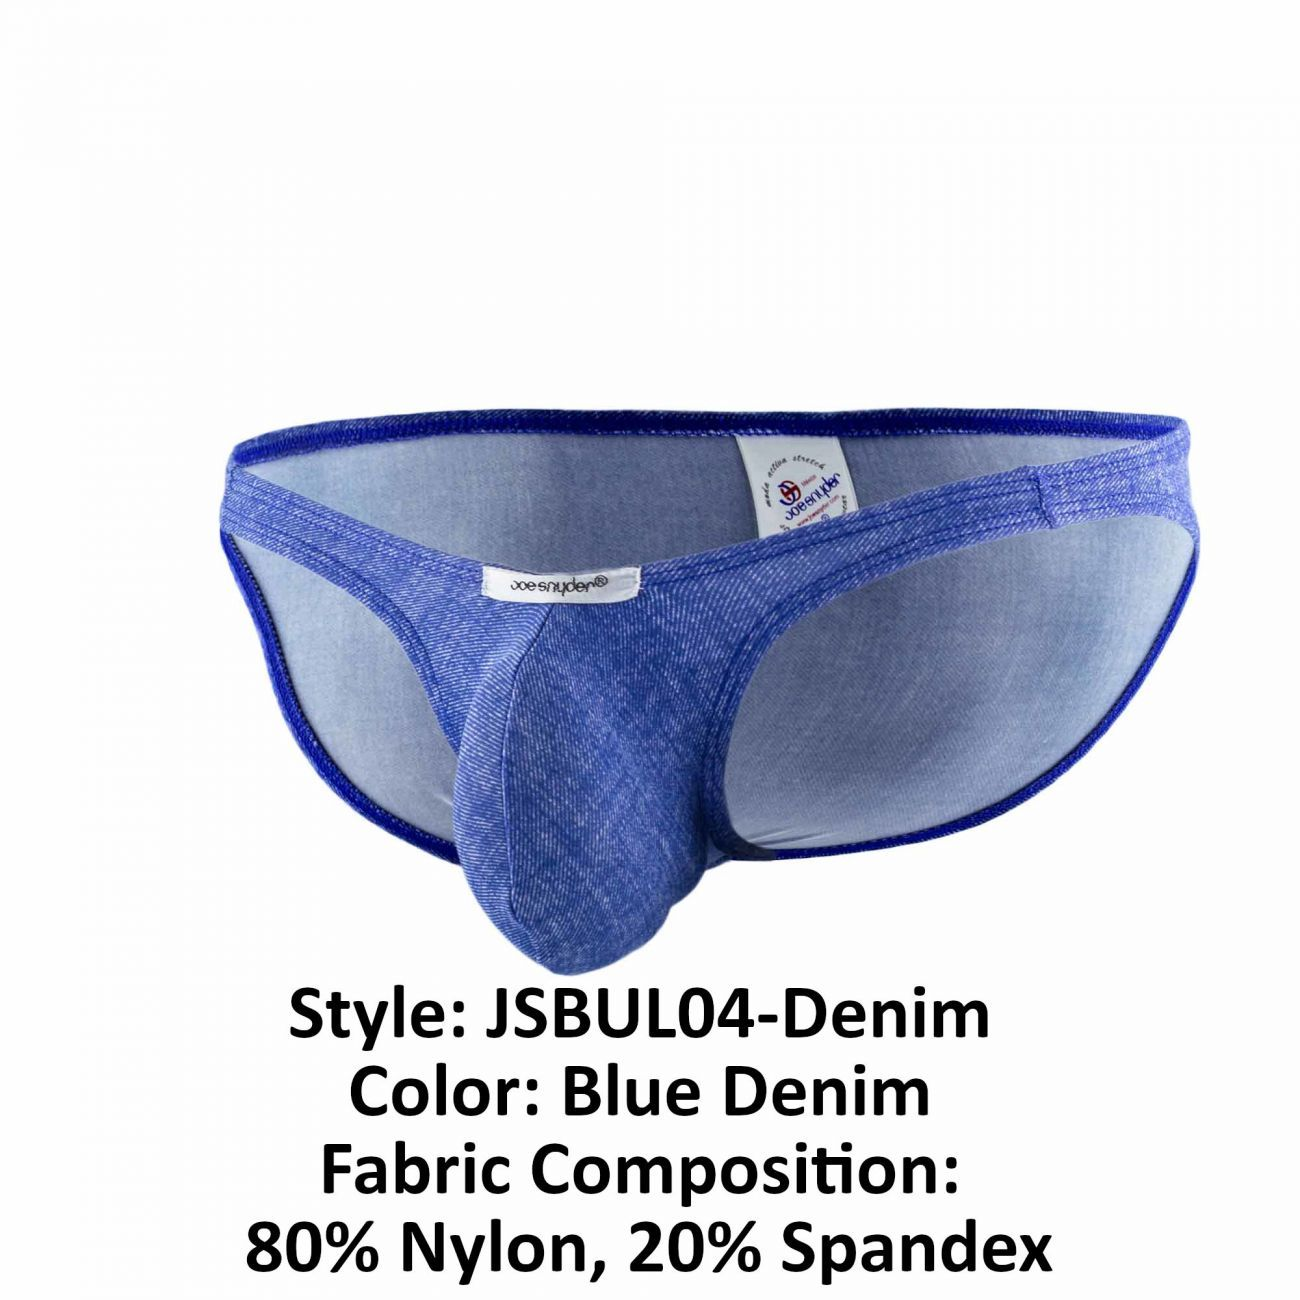 Joe Snyder JSBUL04-Denim Bulge Full Bikini Color Blue Denim